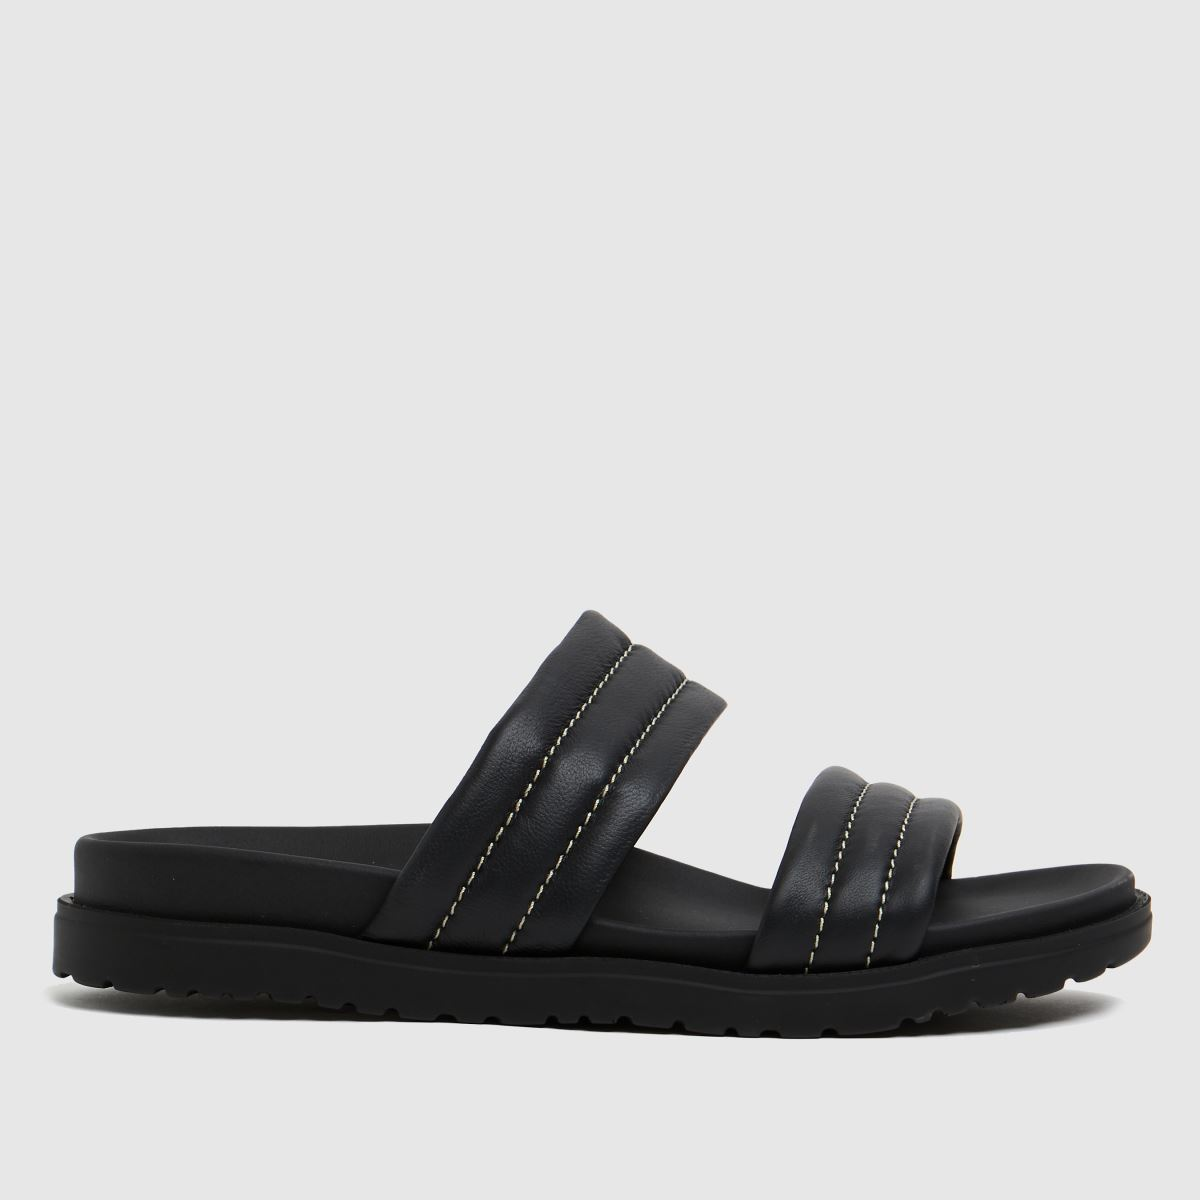 The Edit By Schuh Black Phoebe Leather Sandals